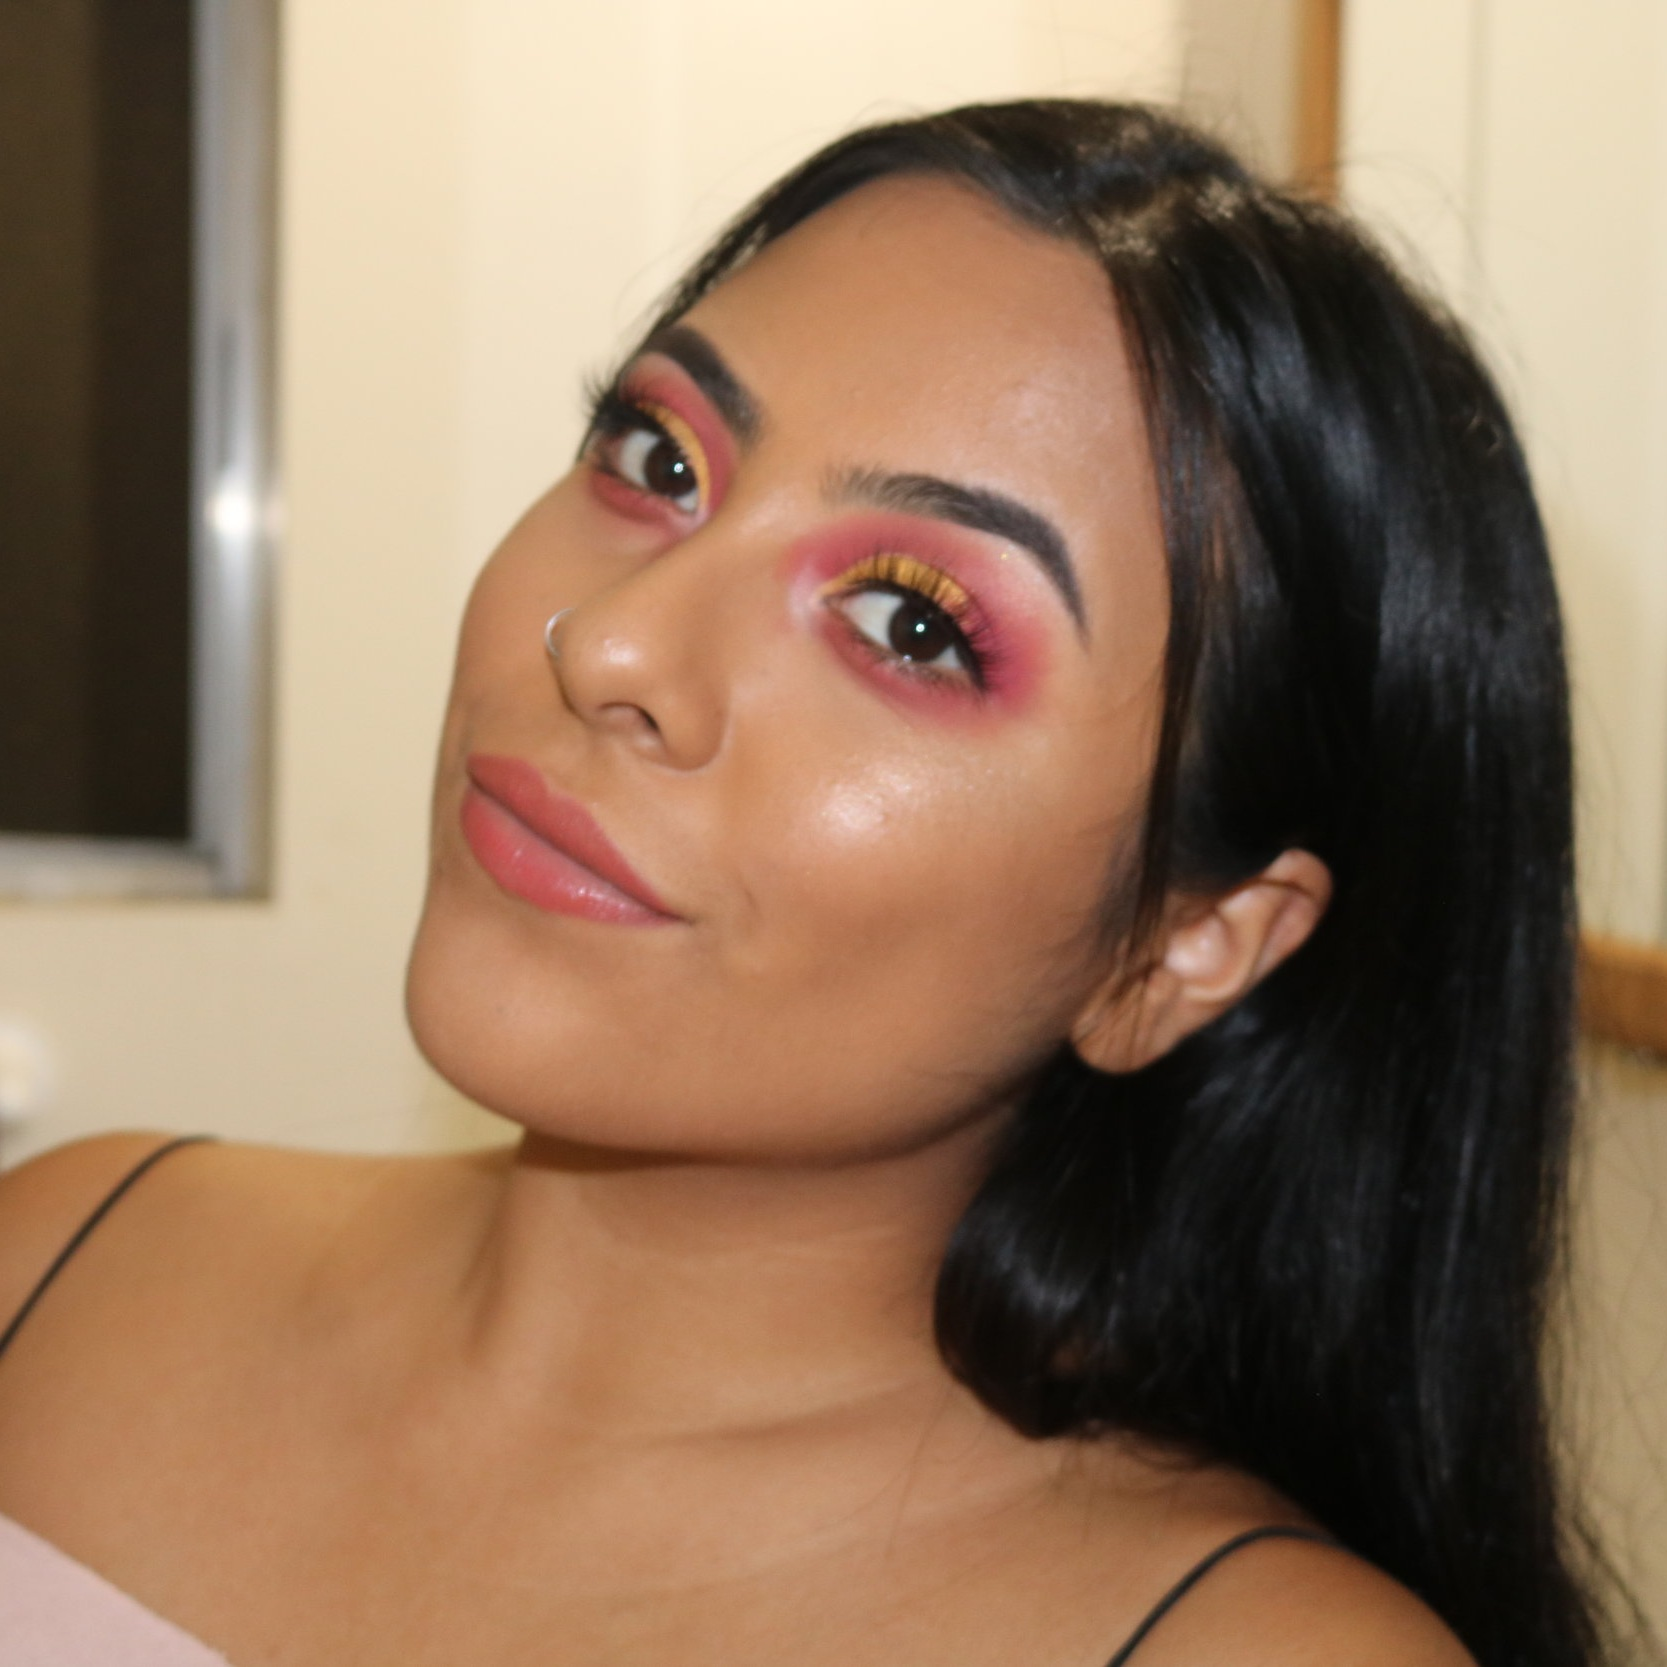 """@glamsbyalms - Discount Code:""""almita""""I recently started but was always afraid of putting myself out there but seeing all these other beautiful girls doing the same thing motivated me!! Keep going no matter what! Don't discourage yourself!-Alma"""